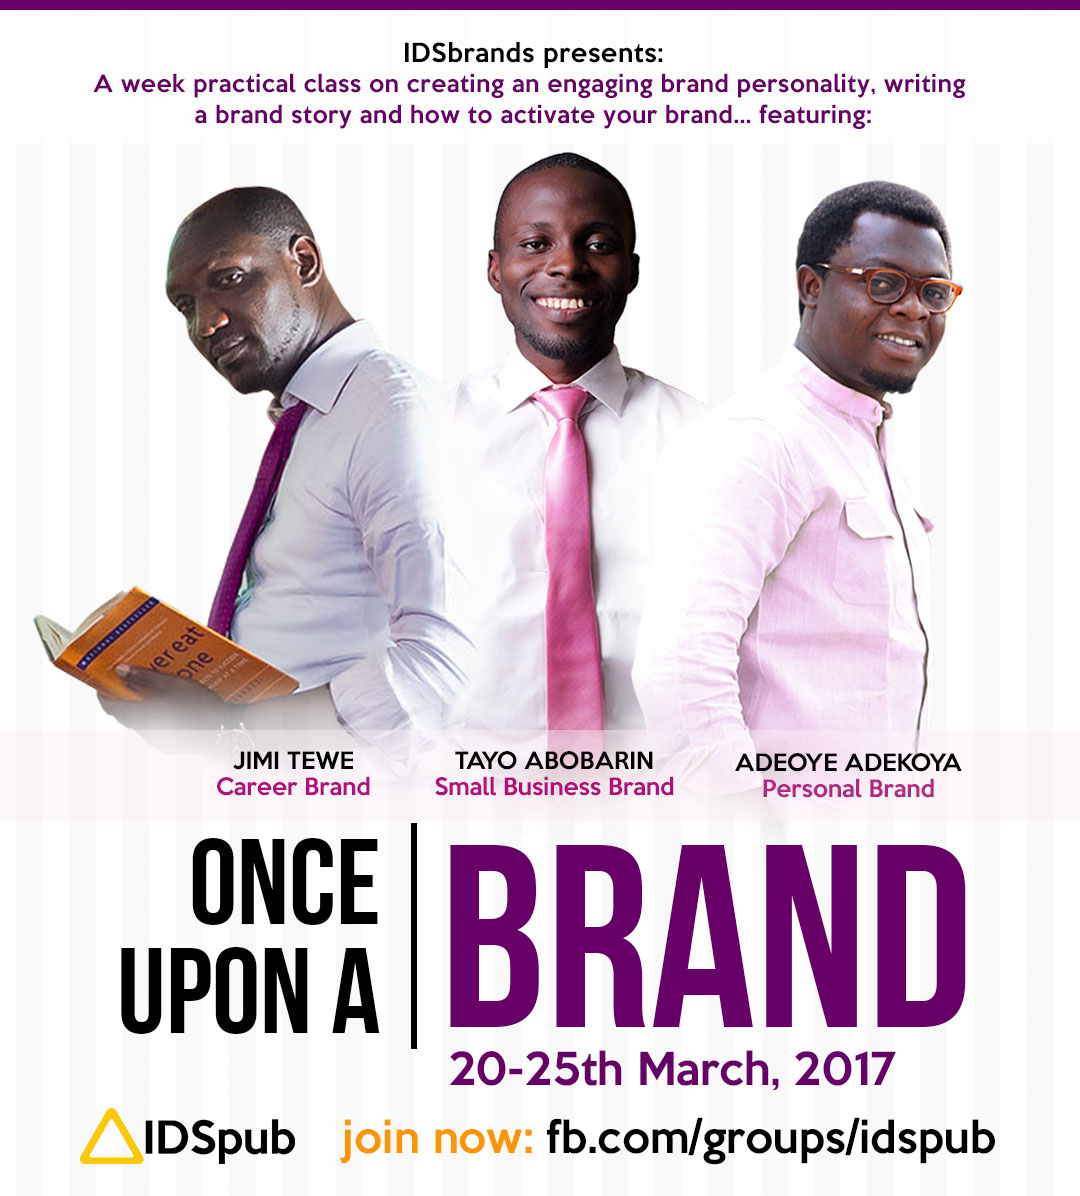 REGISTER FOR ONCE UPON A BRAND